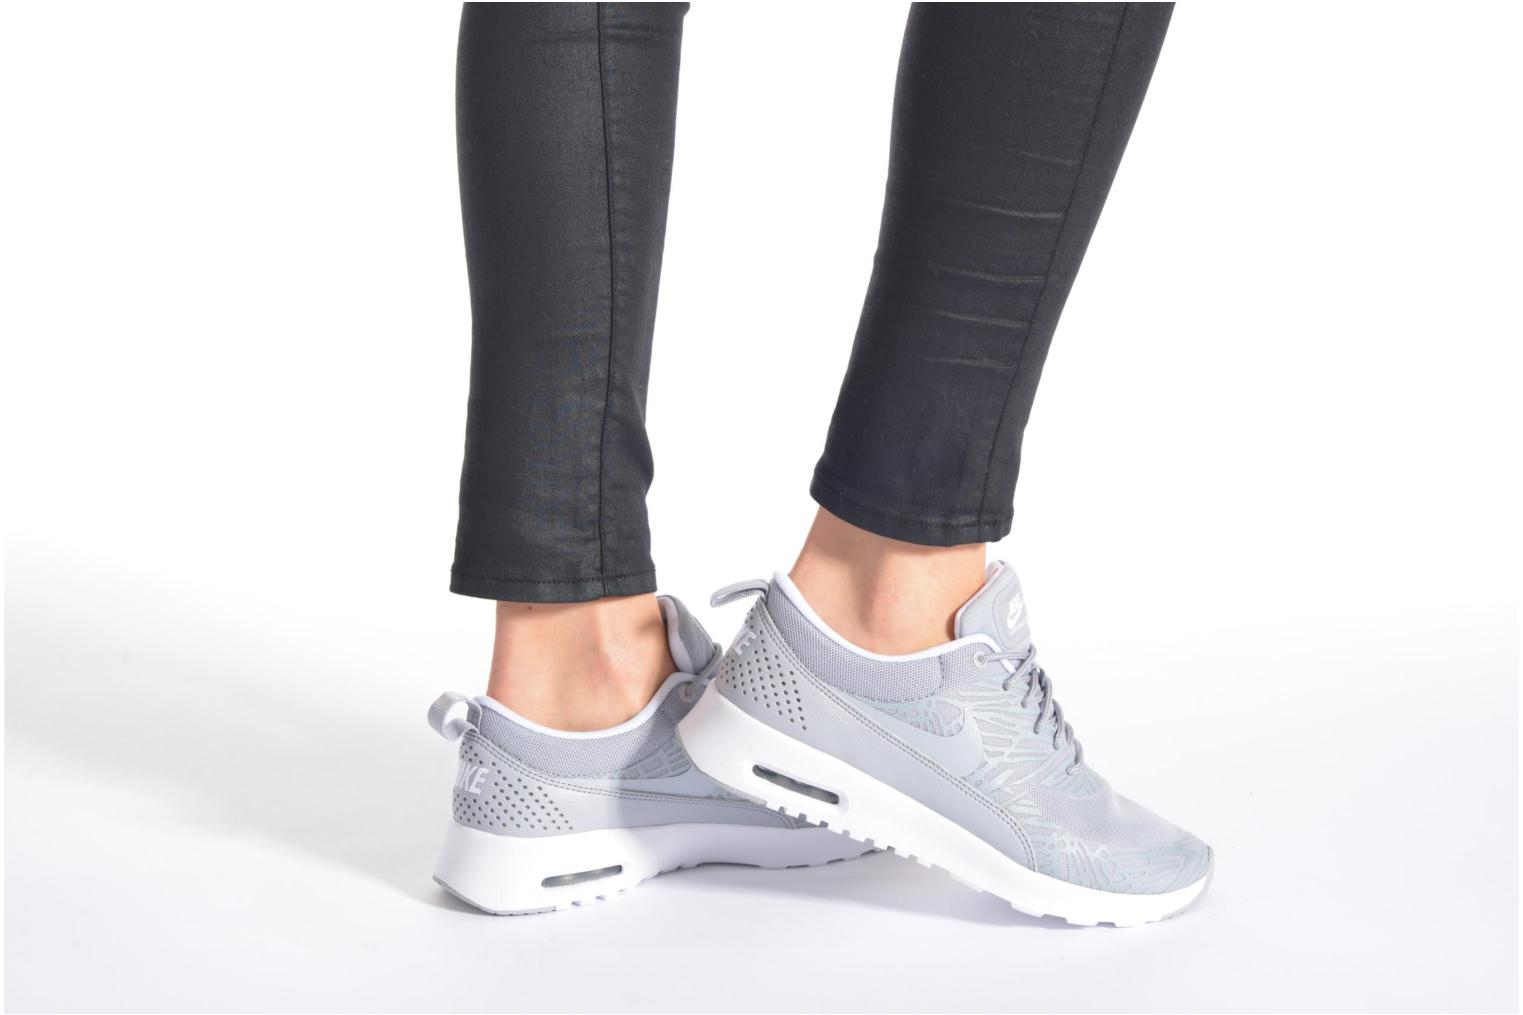 Wmns Nike Air Max Thea Print BLACK/WHITE-DARK GREY